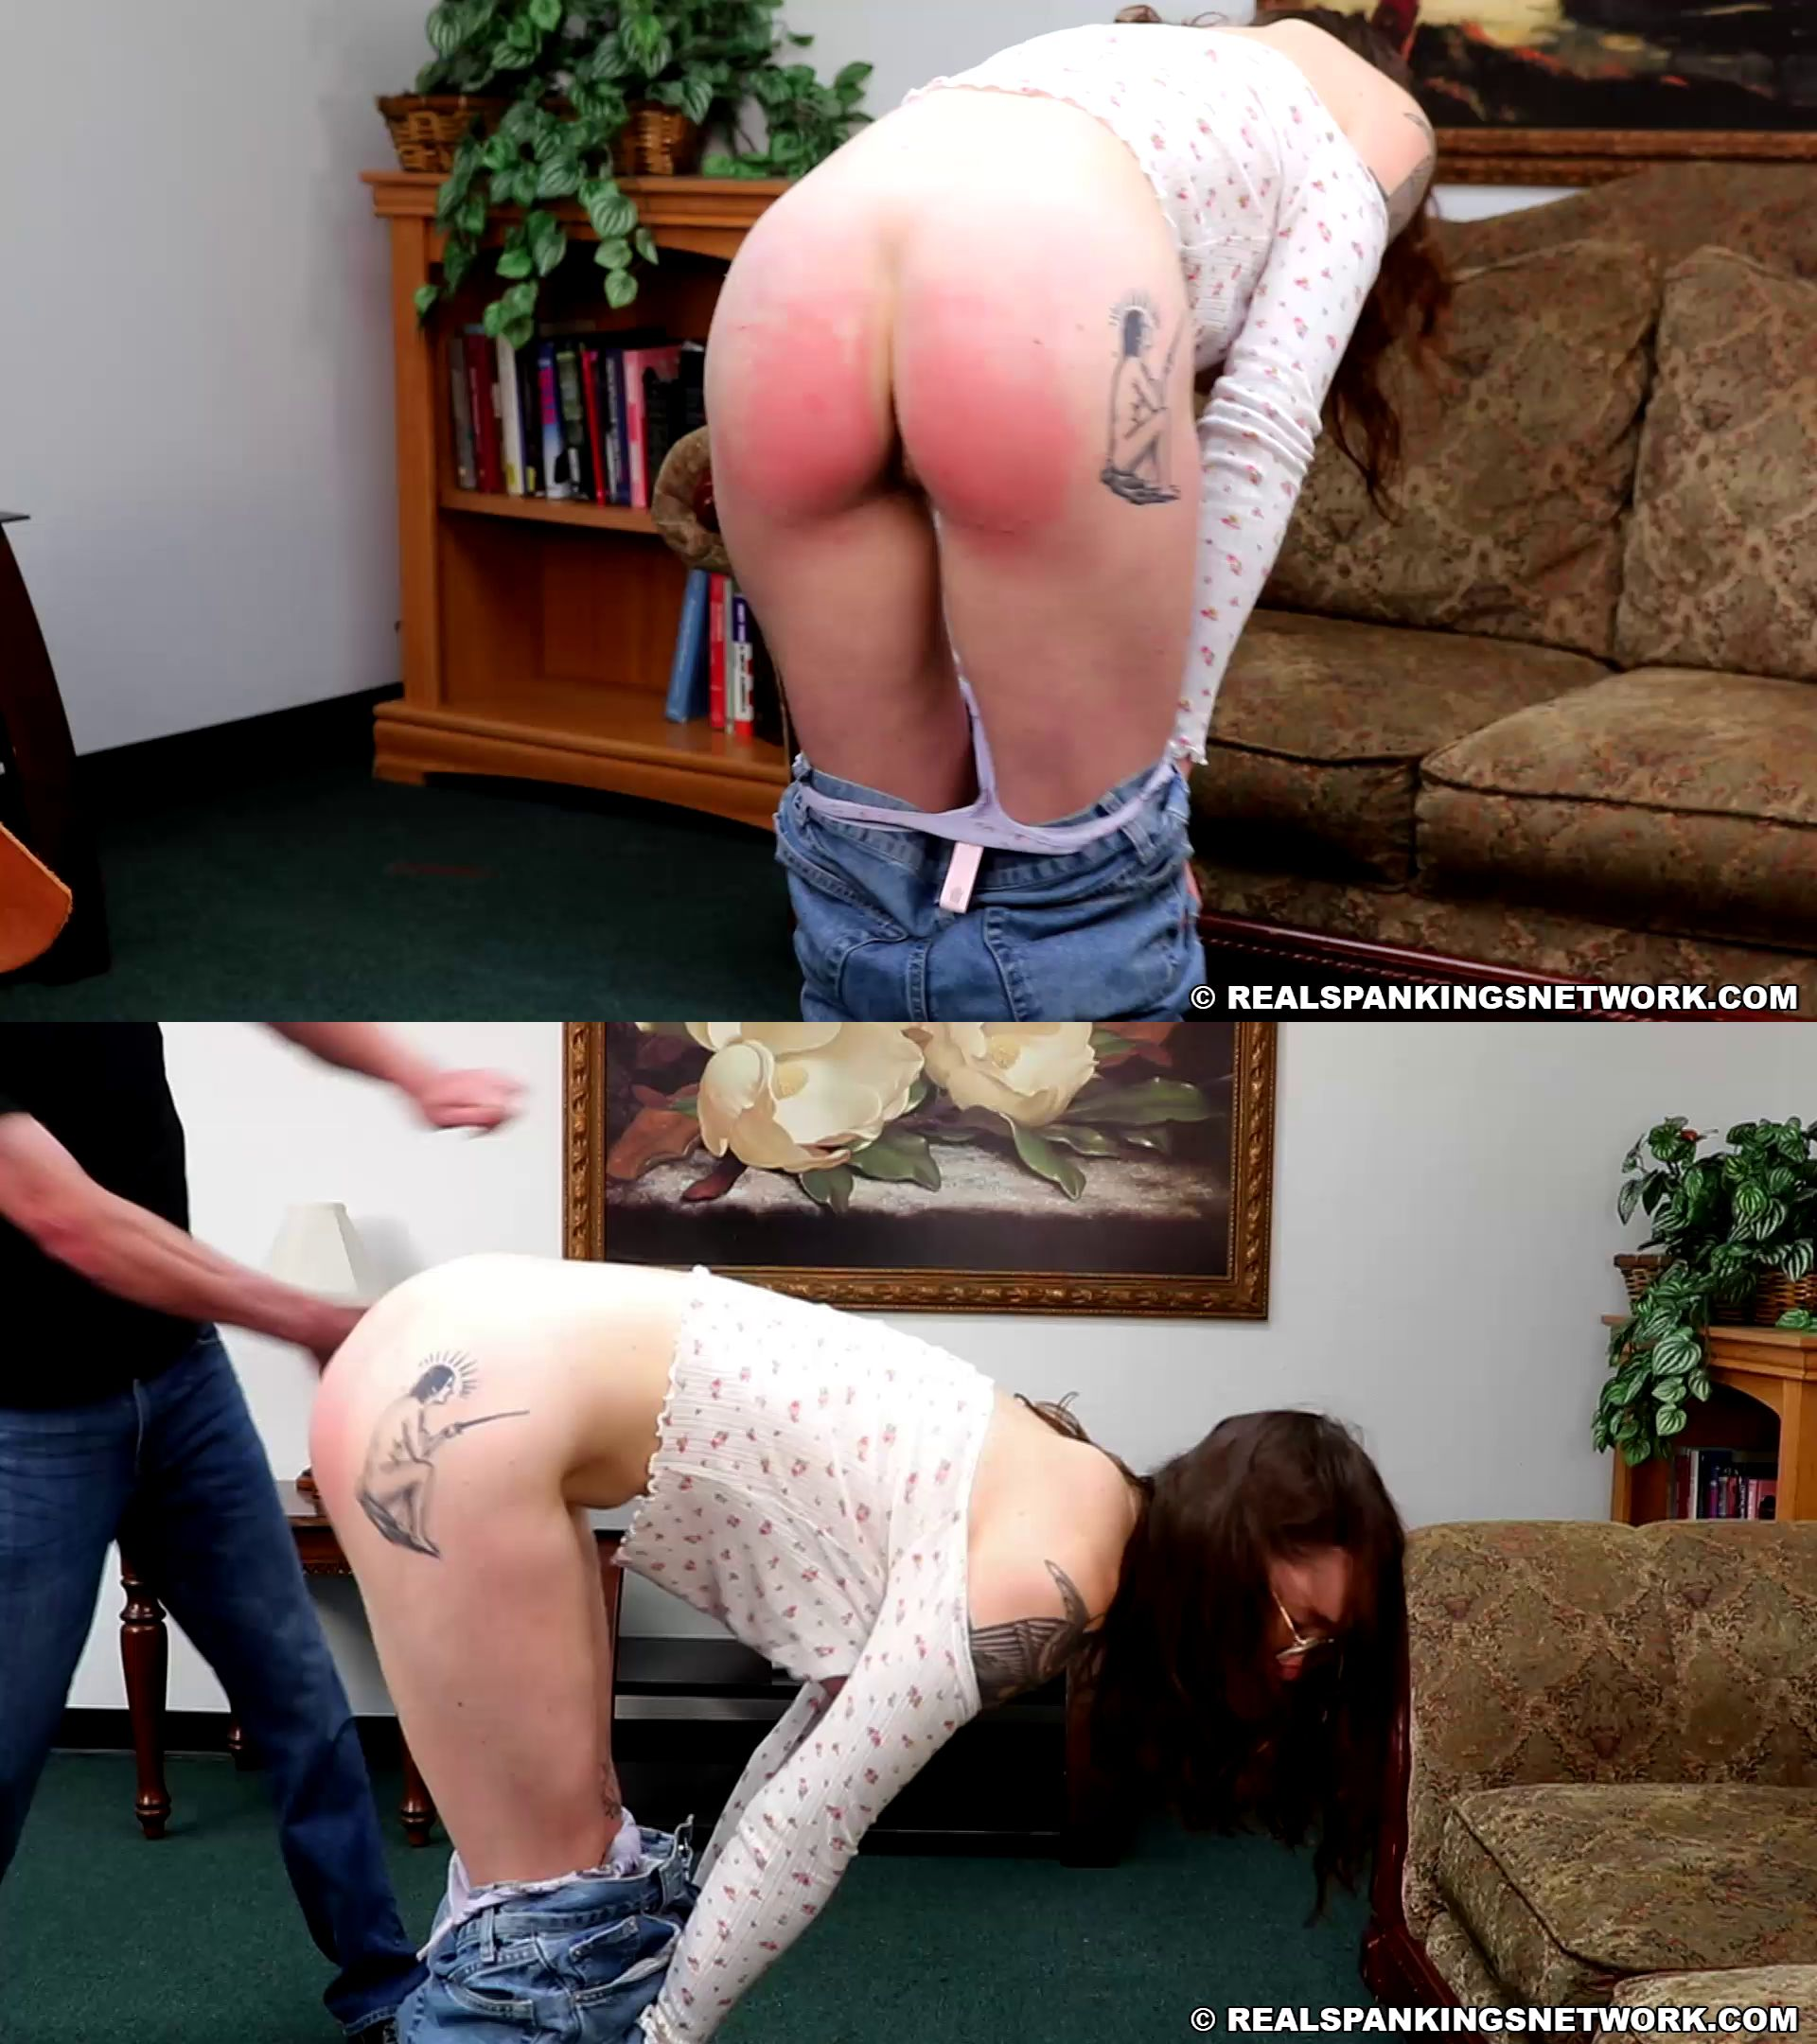 Real Spankings /Real Spankings Network- MP4/HD – Lizzie – Lizzie: Bare Breasted Punishment